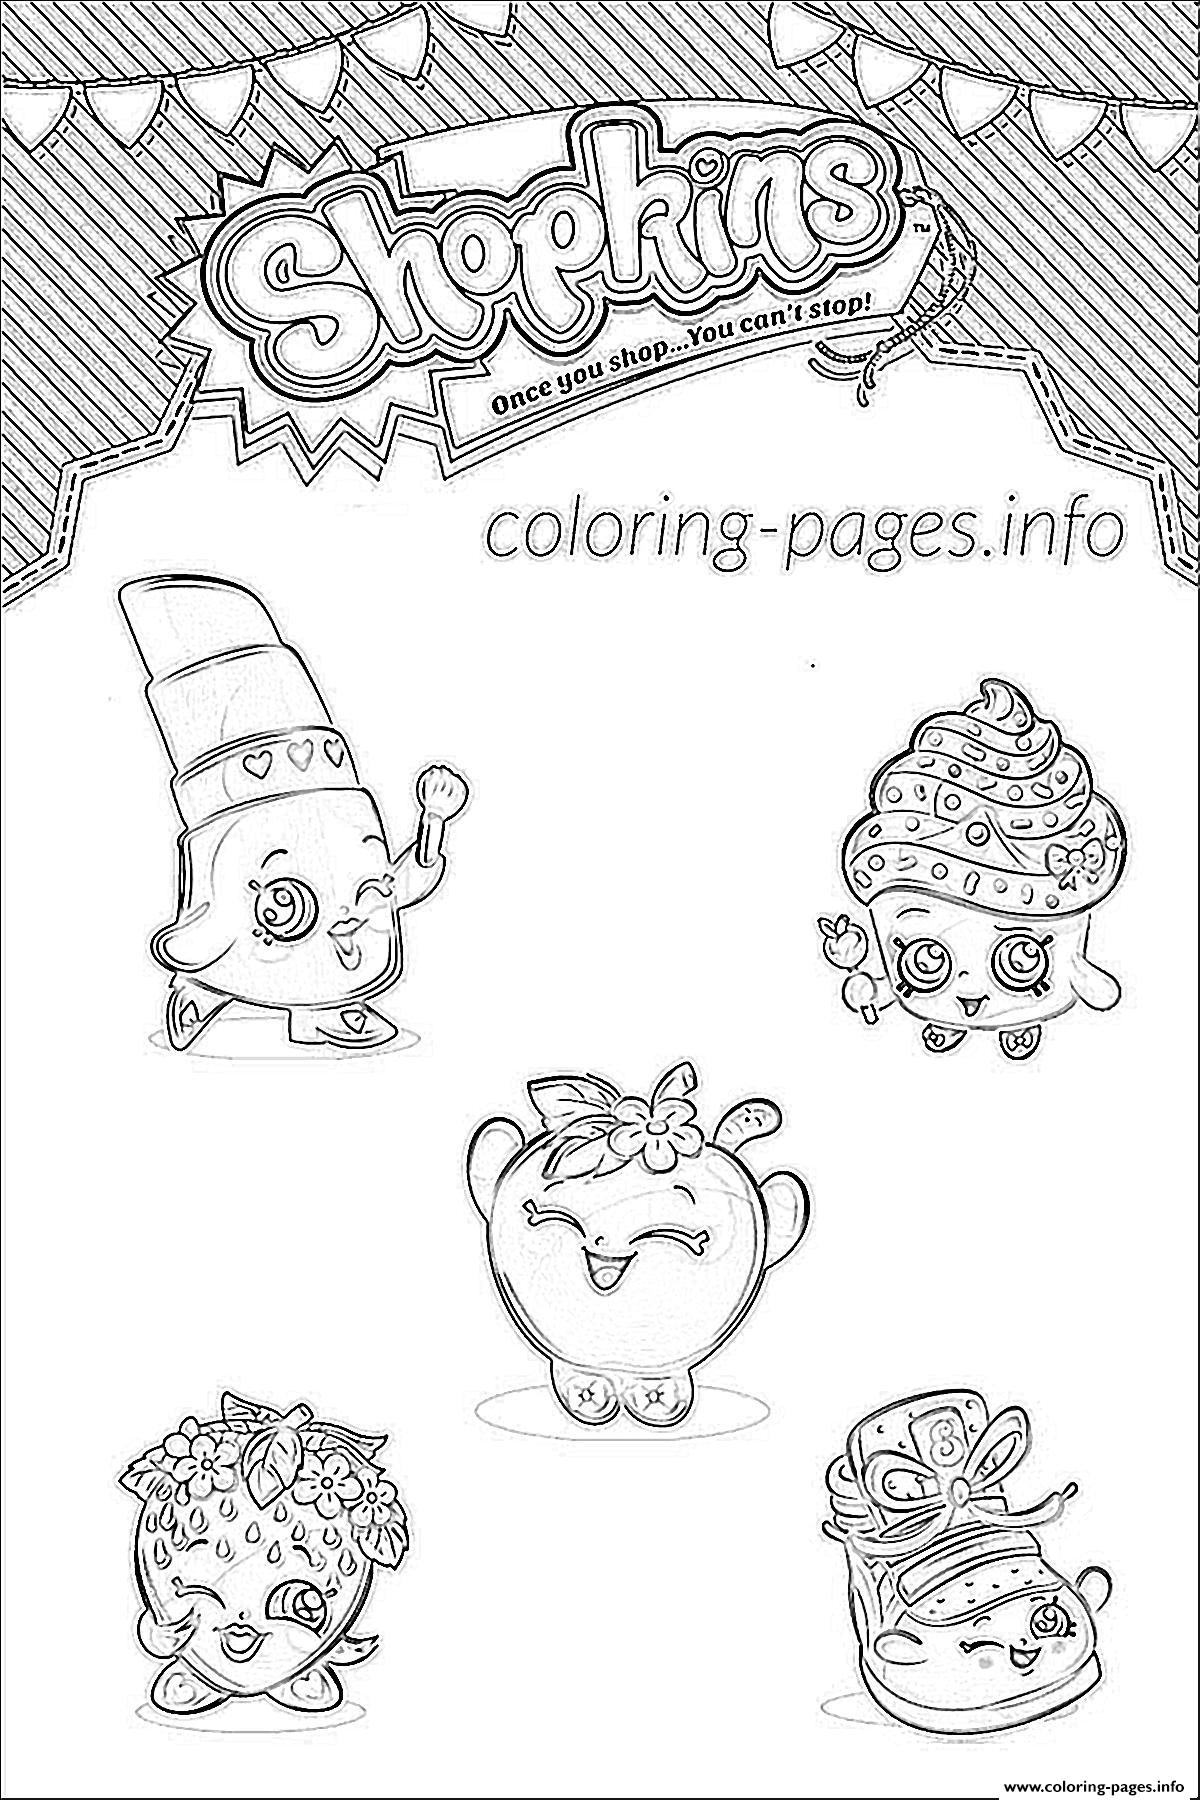 photograph regarding Shopkins Season 3 List Printable identified as Shopkins Loved ones Listing Figures Coloring Web pages Printable